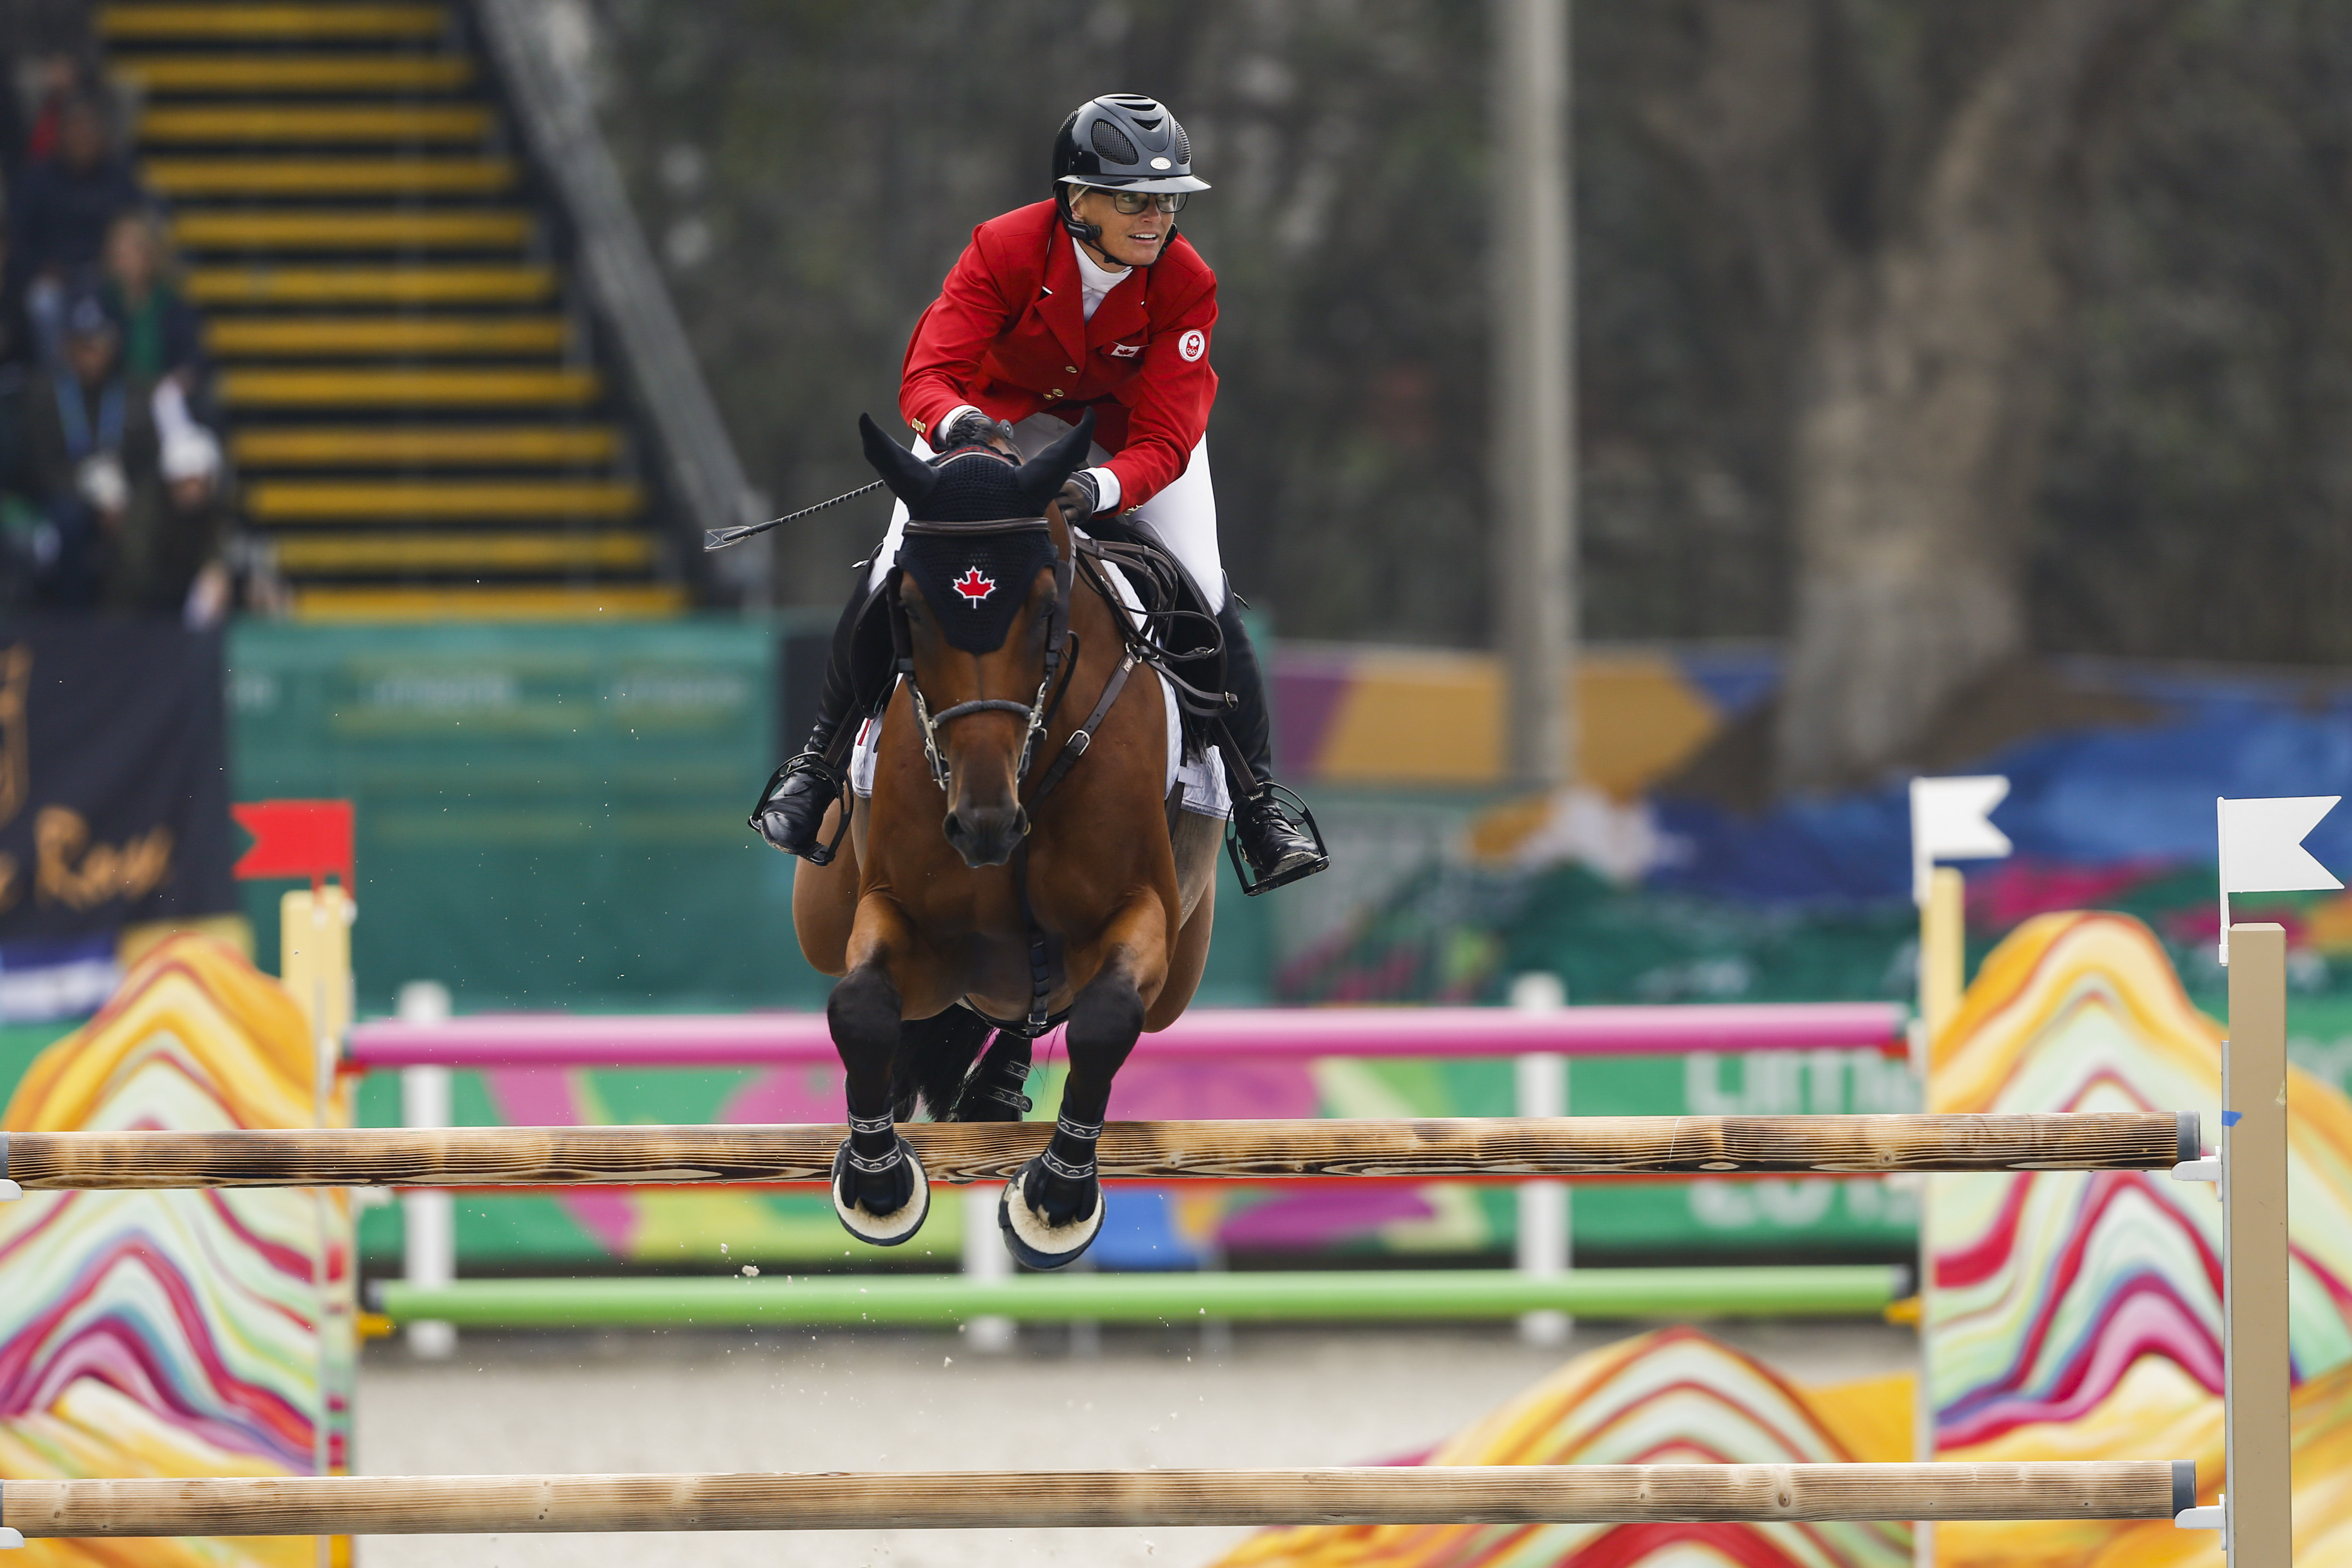 horse and rider jump over a jump